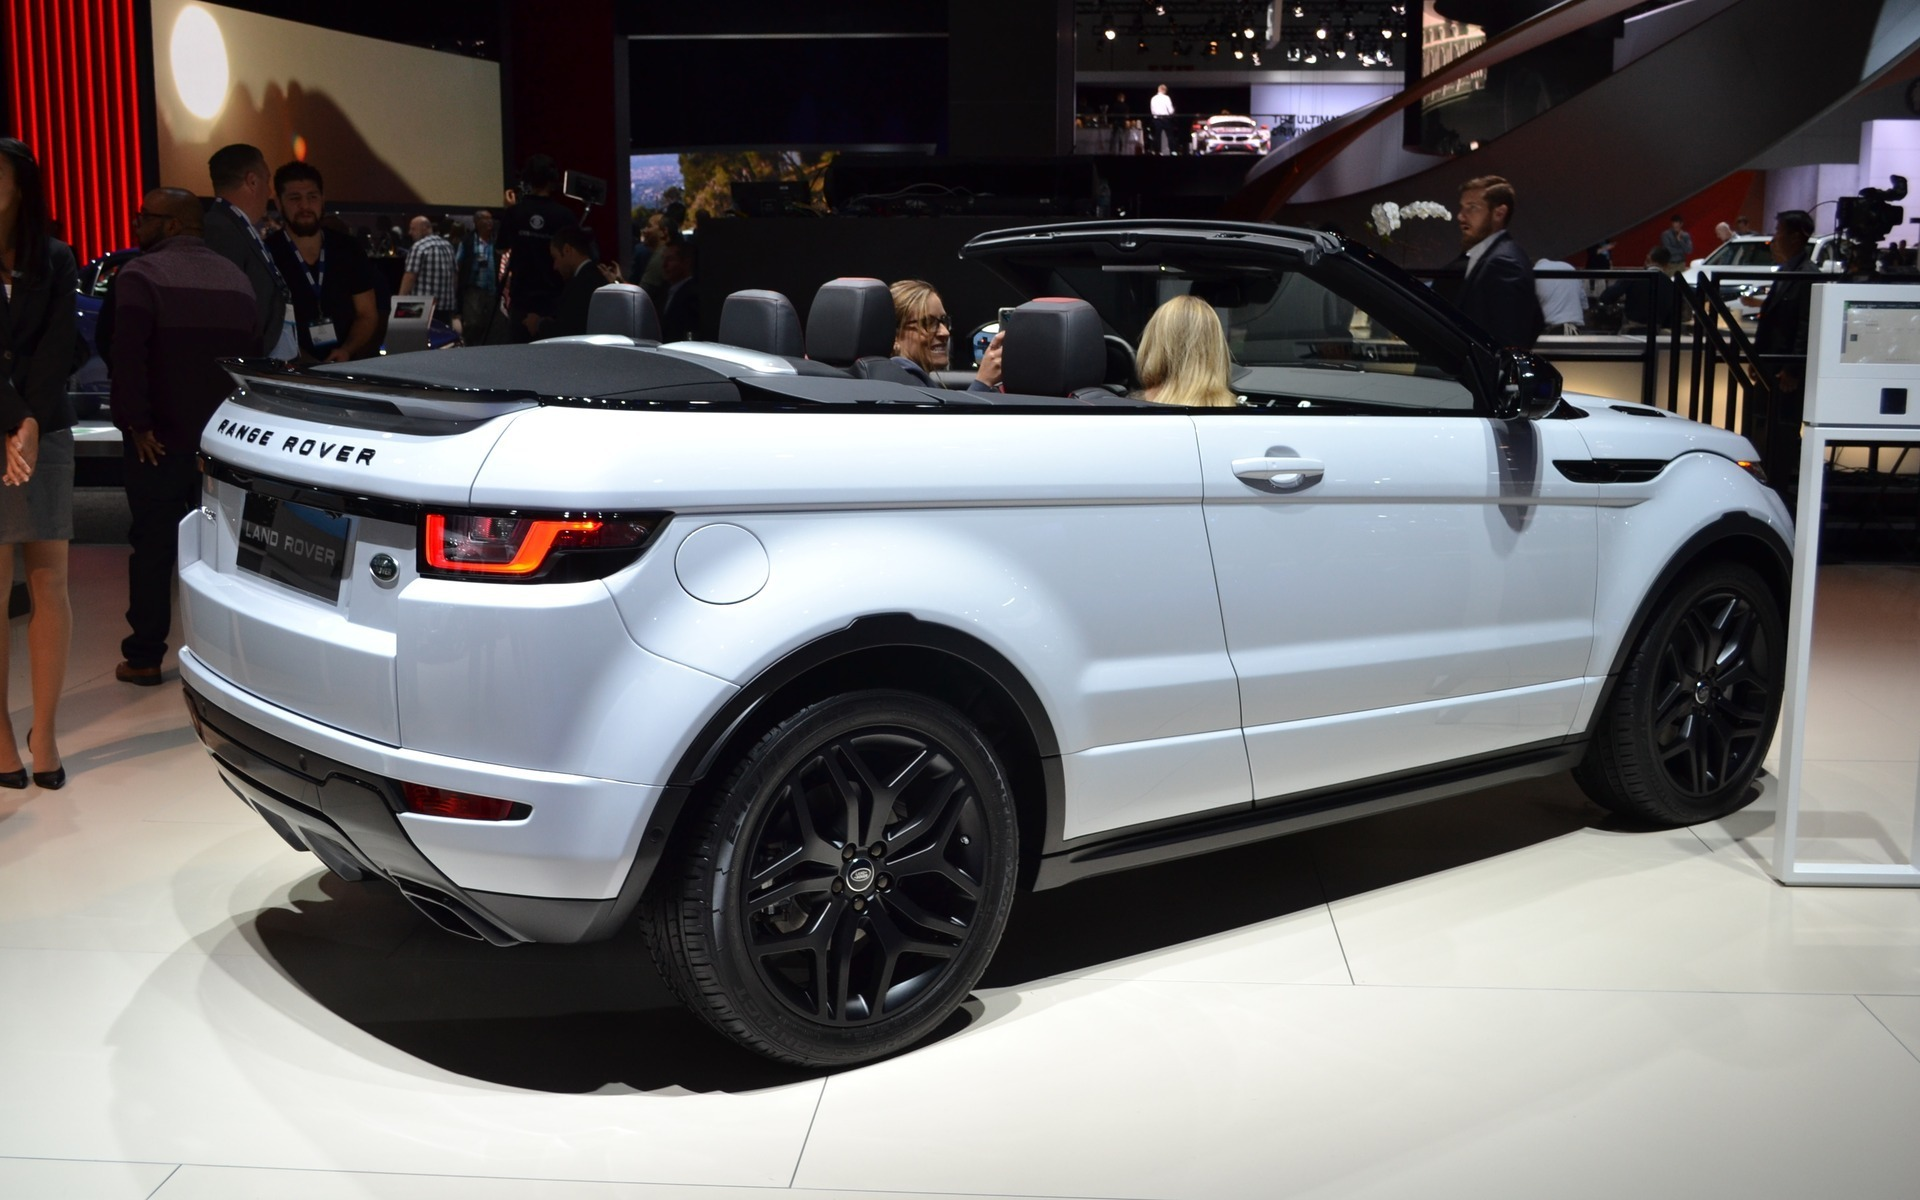 Reviews Of Range Rover >> Range Rover Evoque Convertible Ready To Go - 5/14